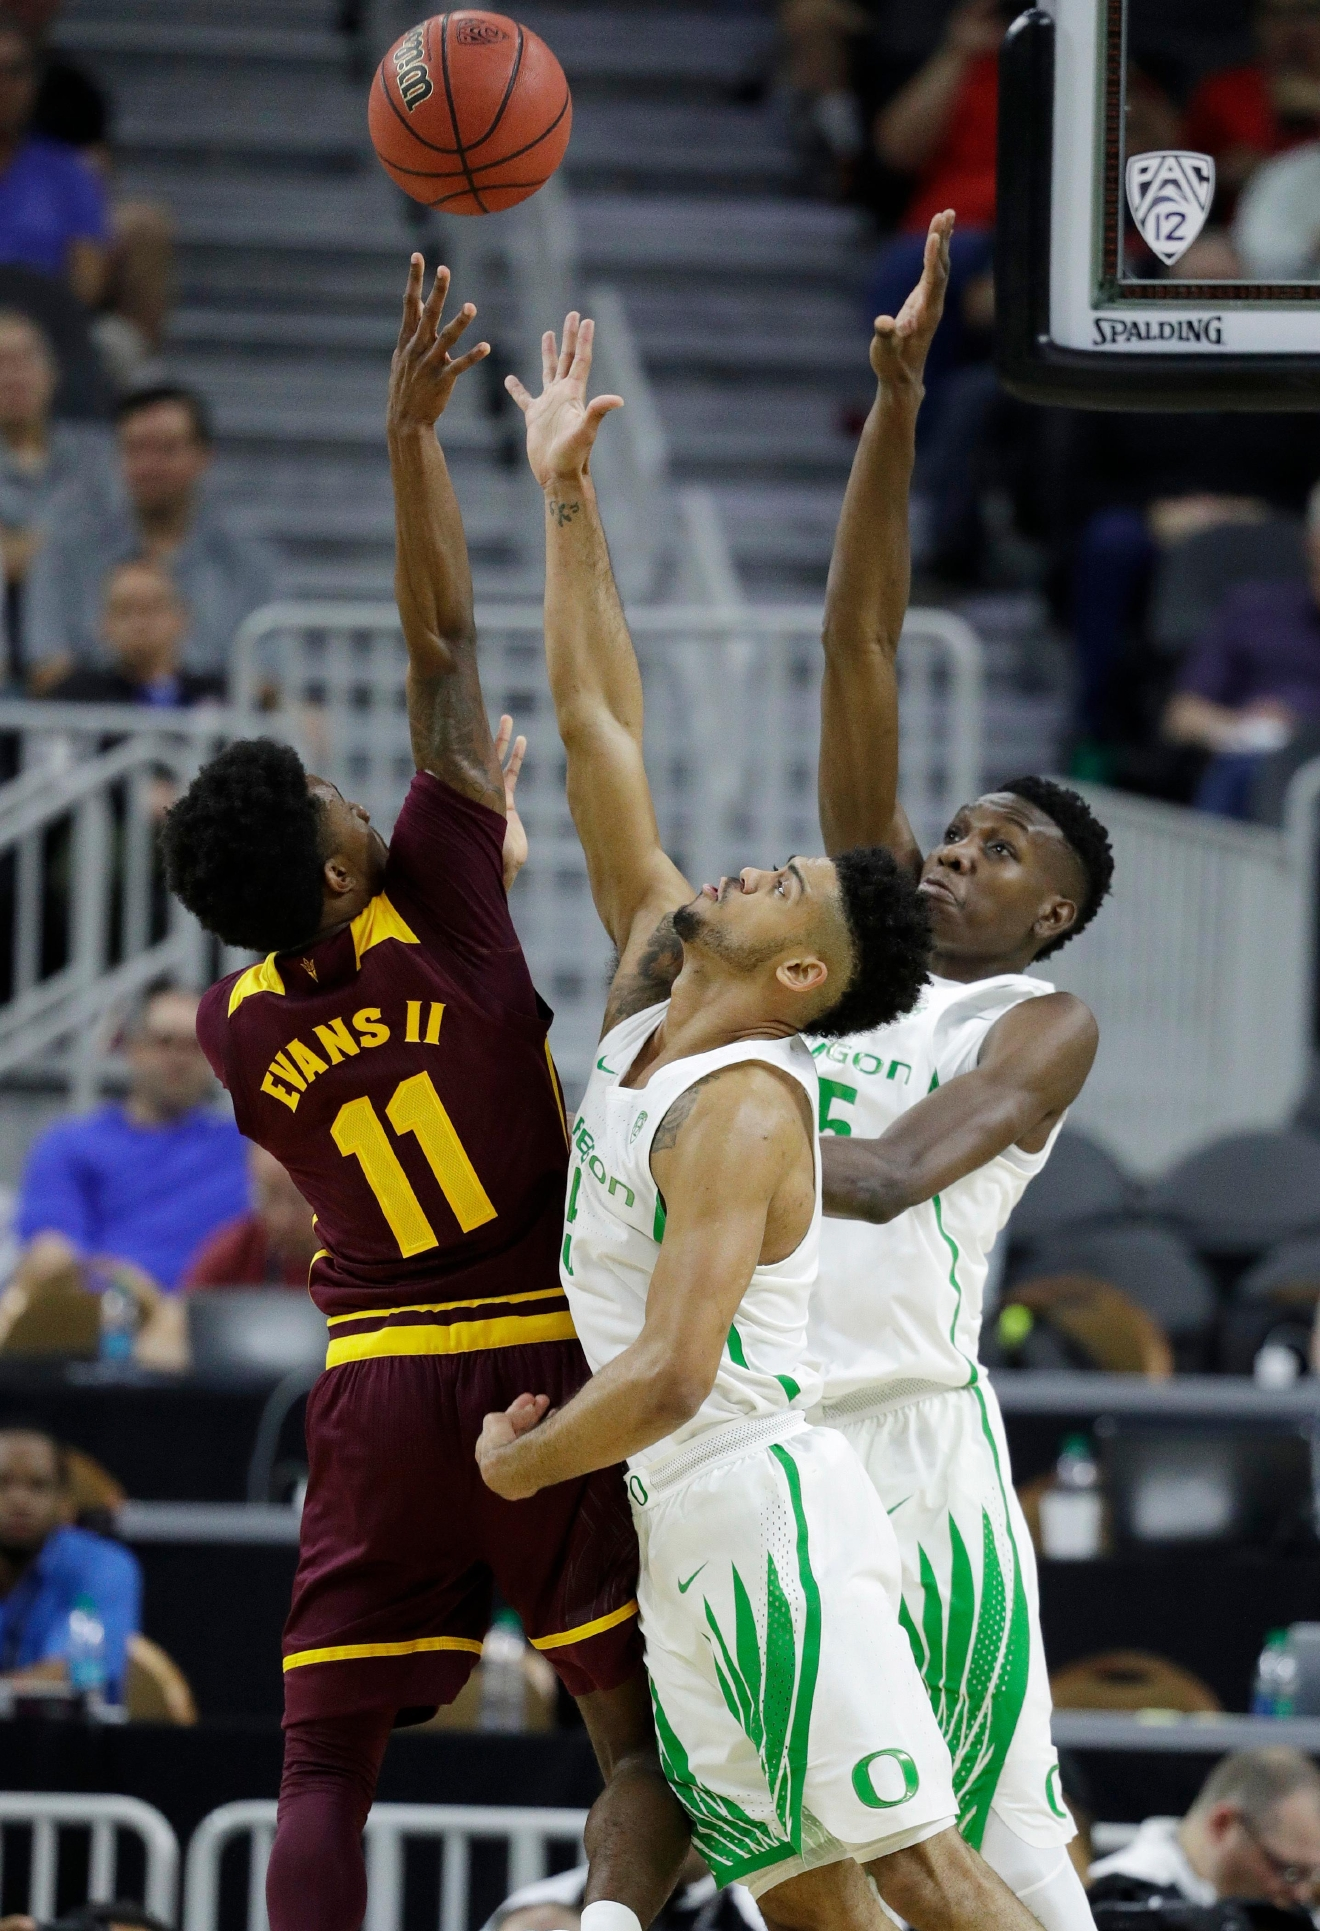 Oregon's Chris Boucher, right, and Oregon's Tyler Dorsey, center, try to block a shot by Arizona State's Shannon Evans II during the first half of an NCAA college basketball game in the quarterfinals of the Pac-12 men's tournament Thursday, March 9, 2017, in Las Vegas. (AP Photo/John Locher)